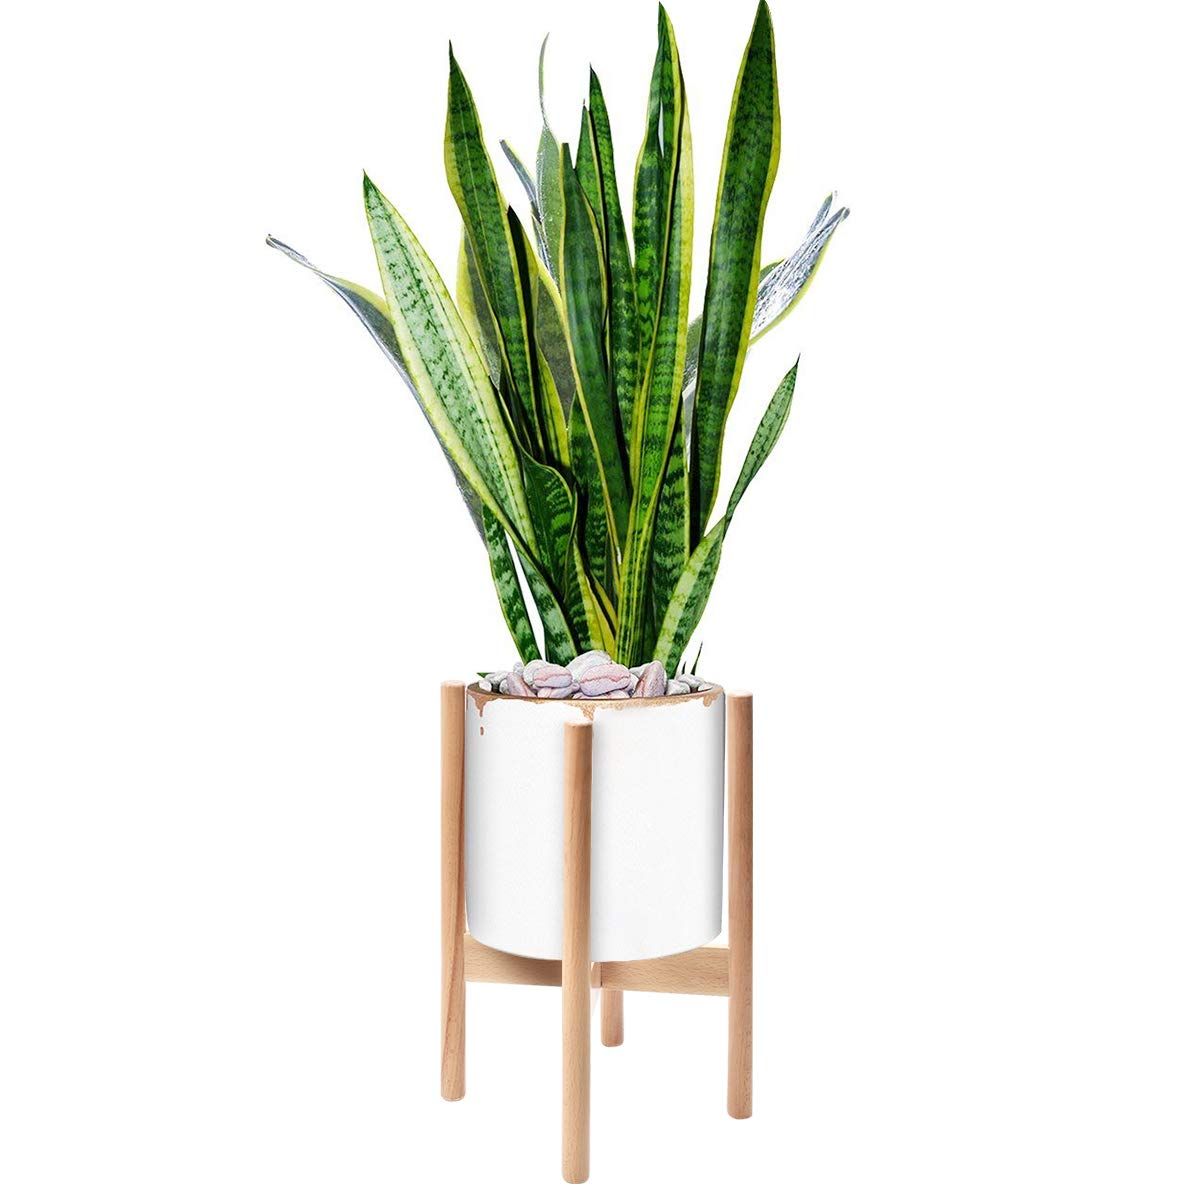 62a4f651bb8a Amazon.com : Mid Century Modern Plant Stand, Best Fits 8.5'' Indoor Plant  Rack, For Small/Medium Wooden Flower Pot (Planter Not Included) : Garden &  Outdoor